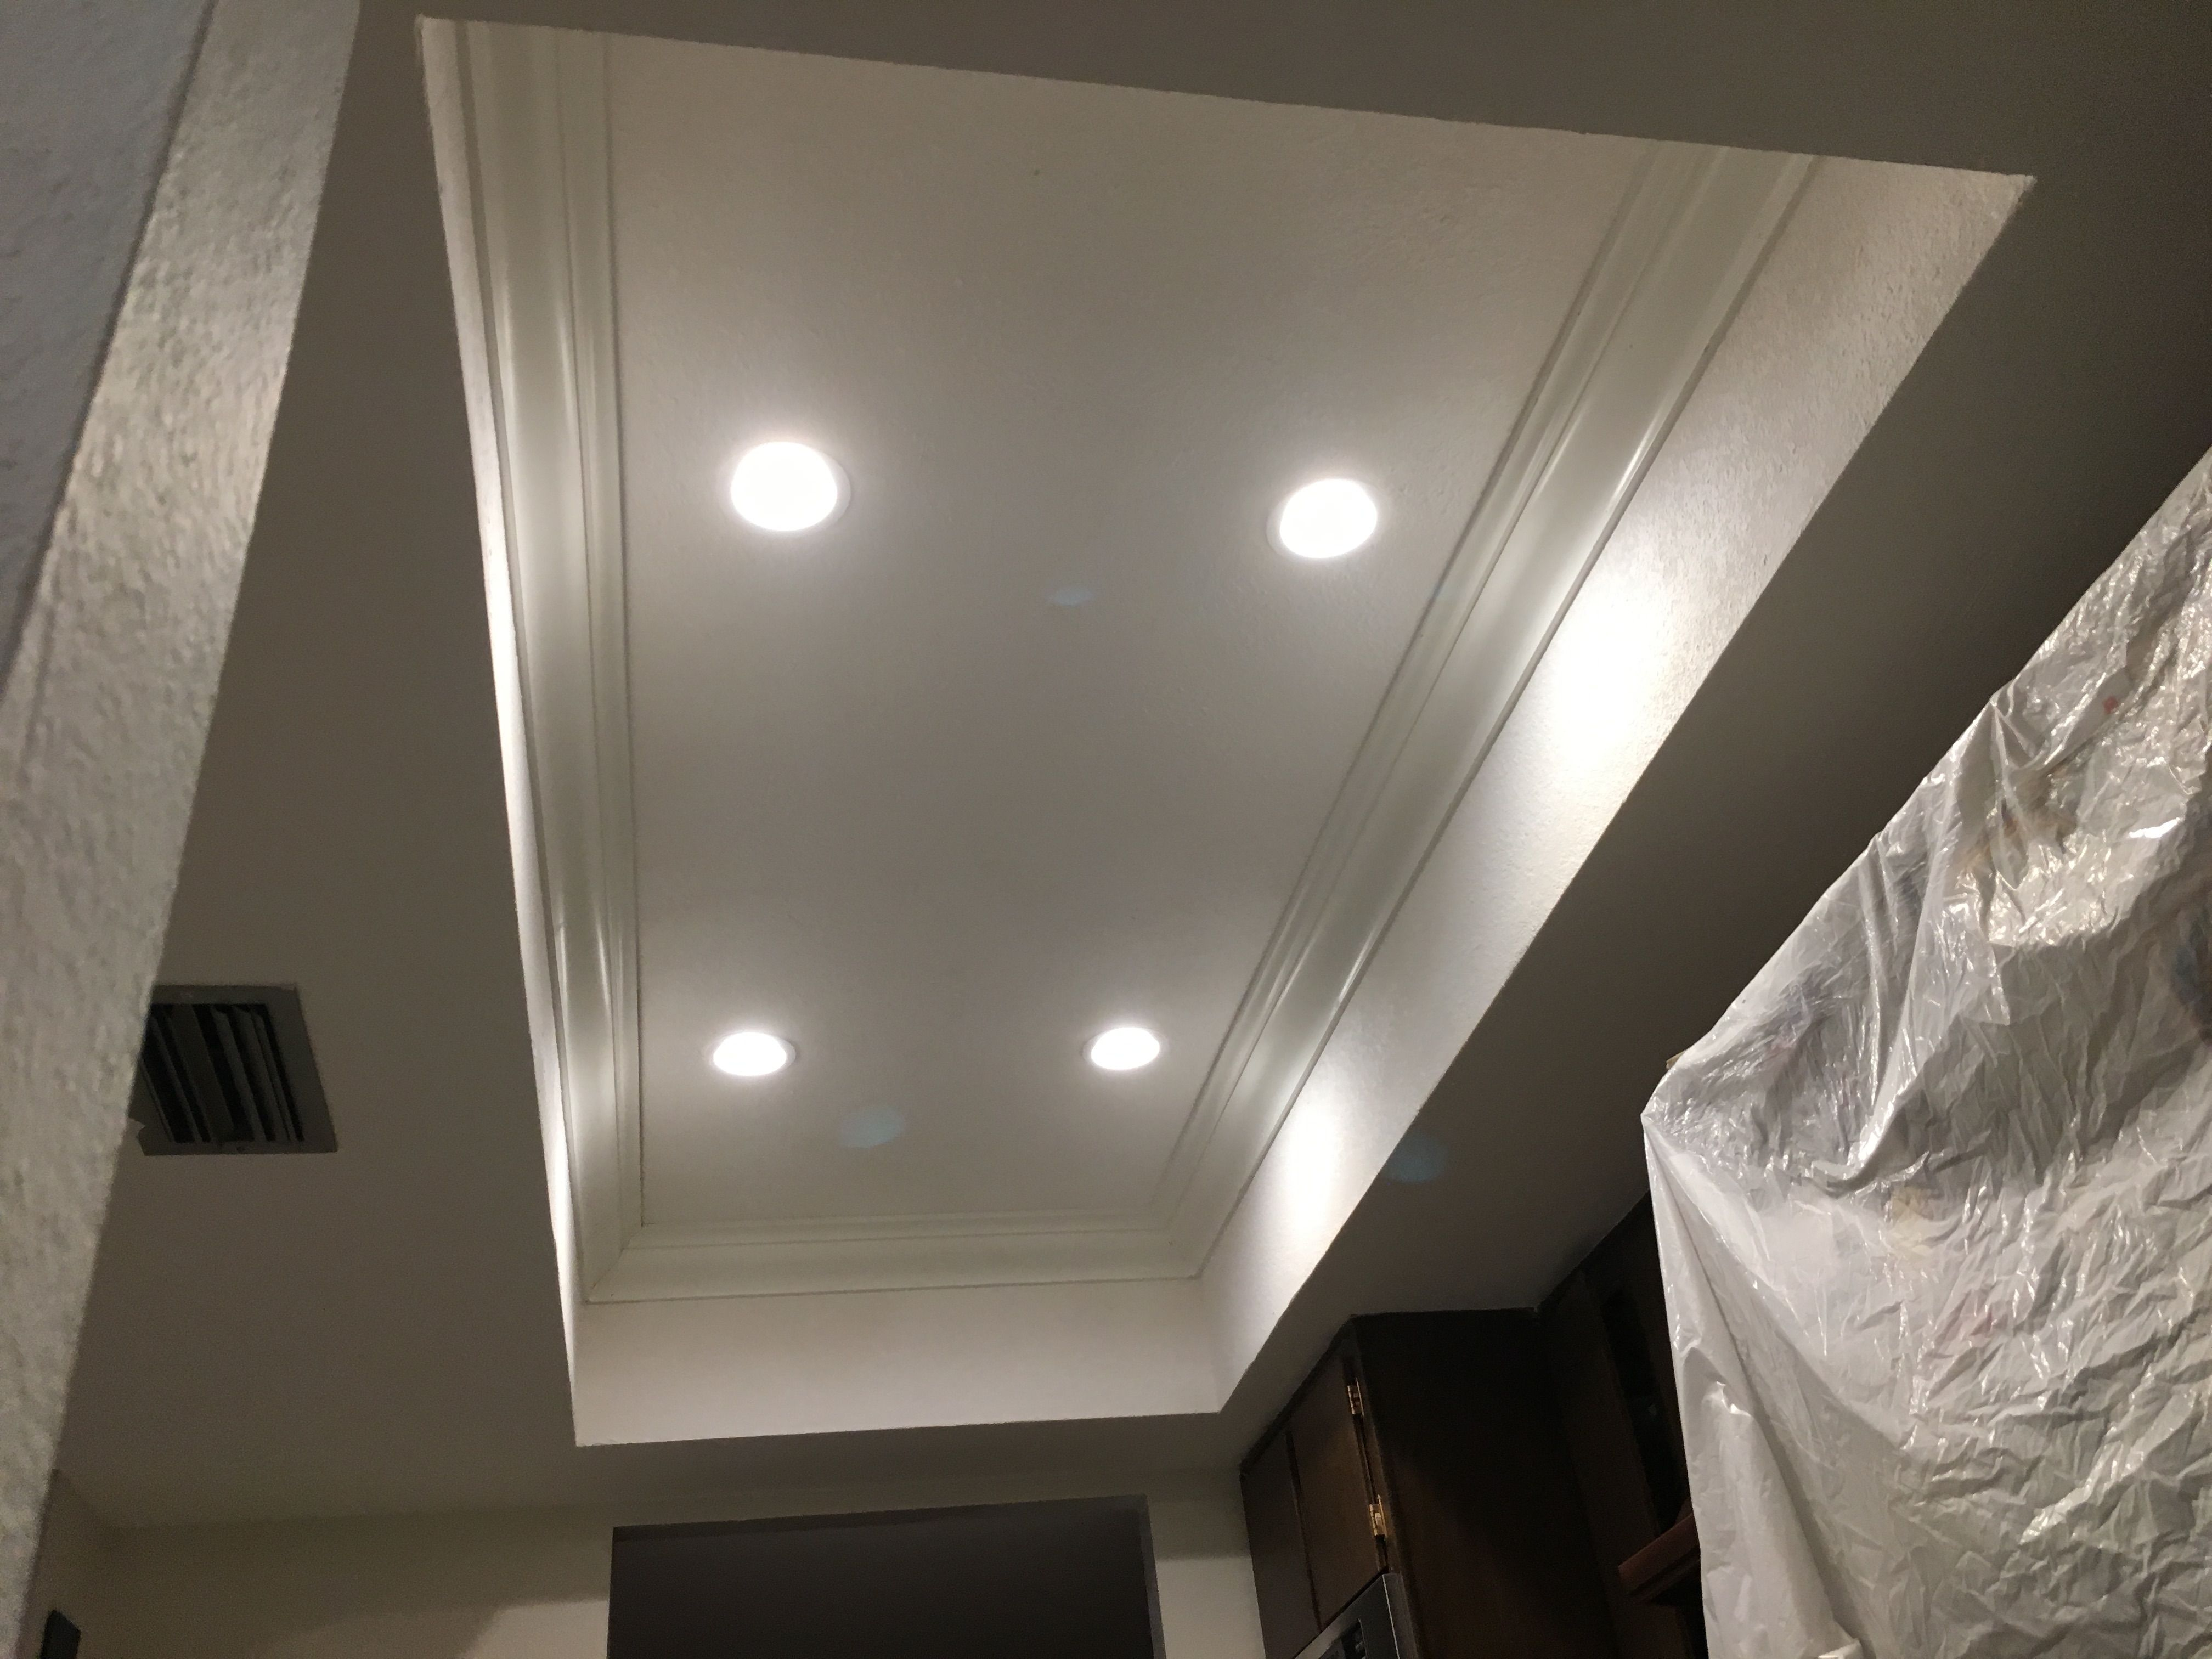 Demoed old lighting mud and textured 4x8 tray ceiling installed 4 demoed old lighting mud and textured 4x8 tray ceiling installed 4 inch 2700k recessed lights prepped crown painted crown molding and installed aloadofball Choice Image